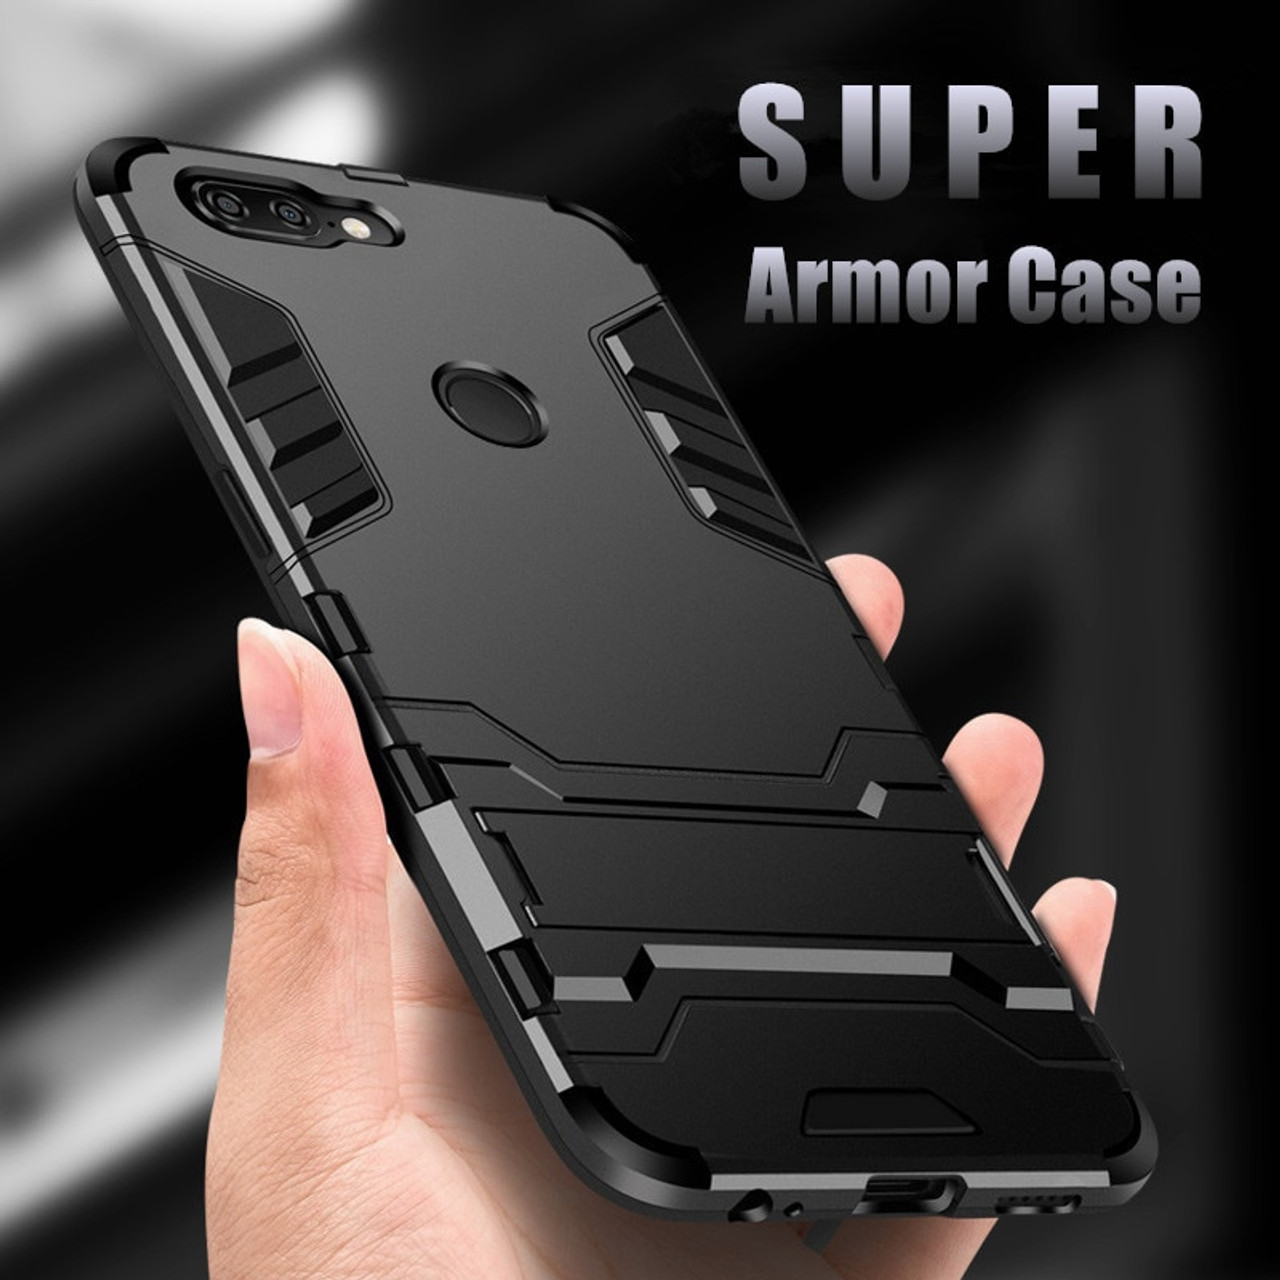 the latest 4427f 80496 Armor Case For Oneplus 5 Luxury Shockproof Hybrid TPU Silicone Hard PC Back  Cover For Oneplus 5T Oneplus 3T 6 T Case Phone Shell